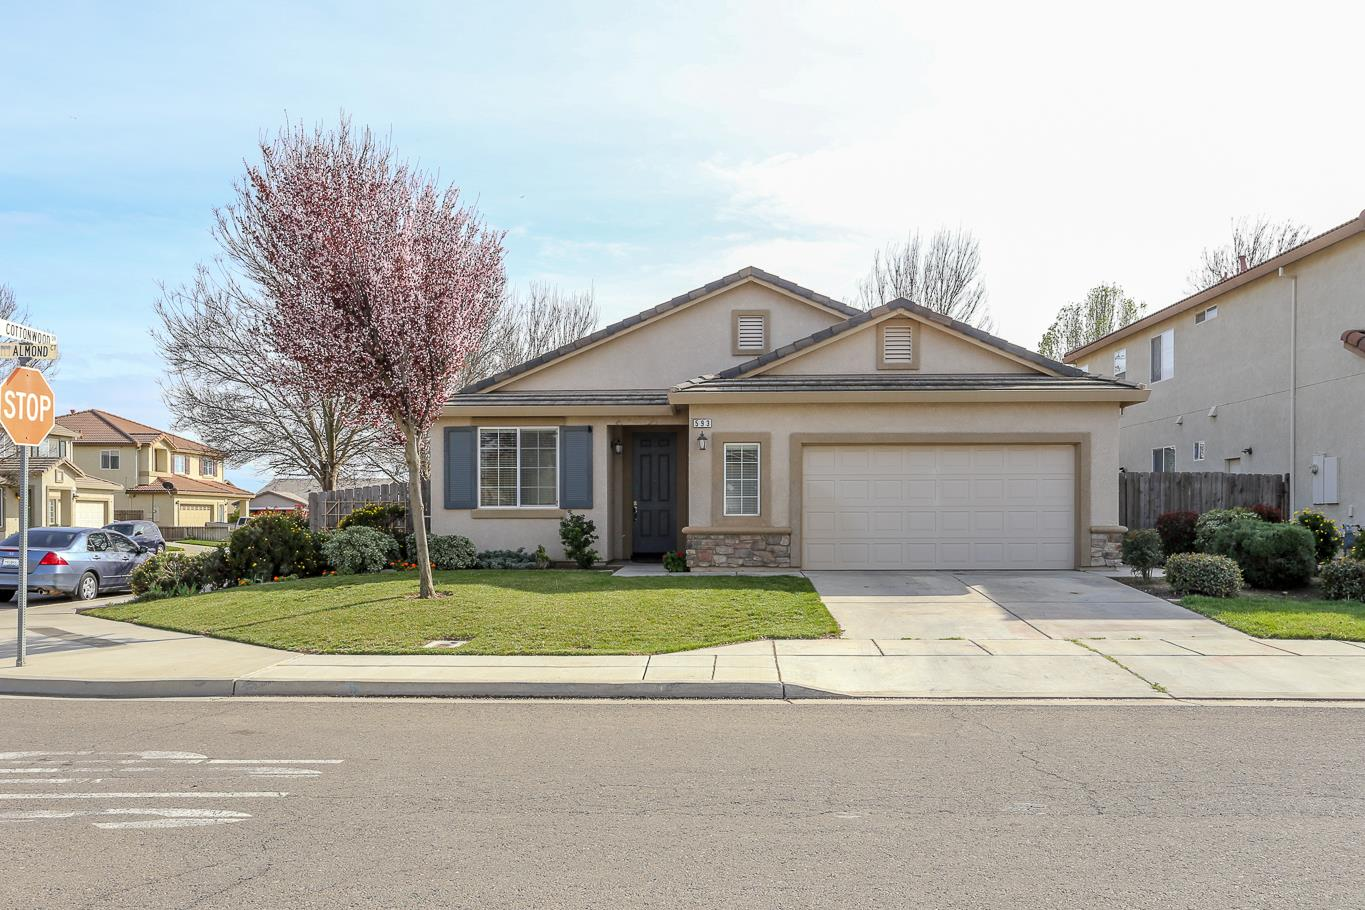 Single Family Home for Sale at 593 Almond 593 Almond Chowchilla, California 93610 United States